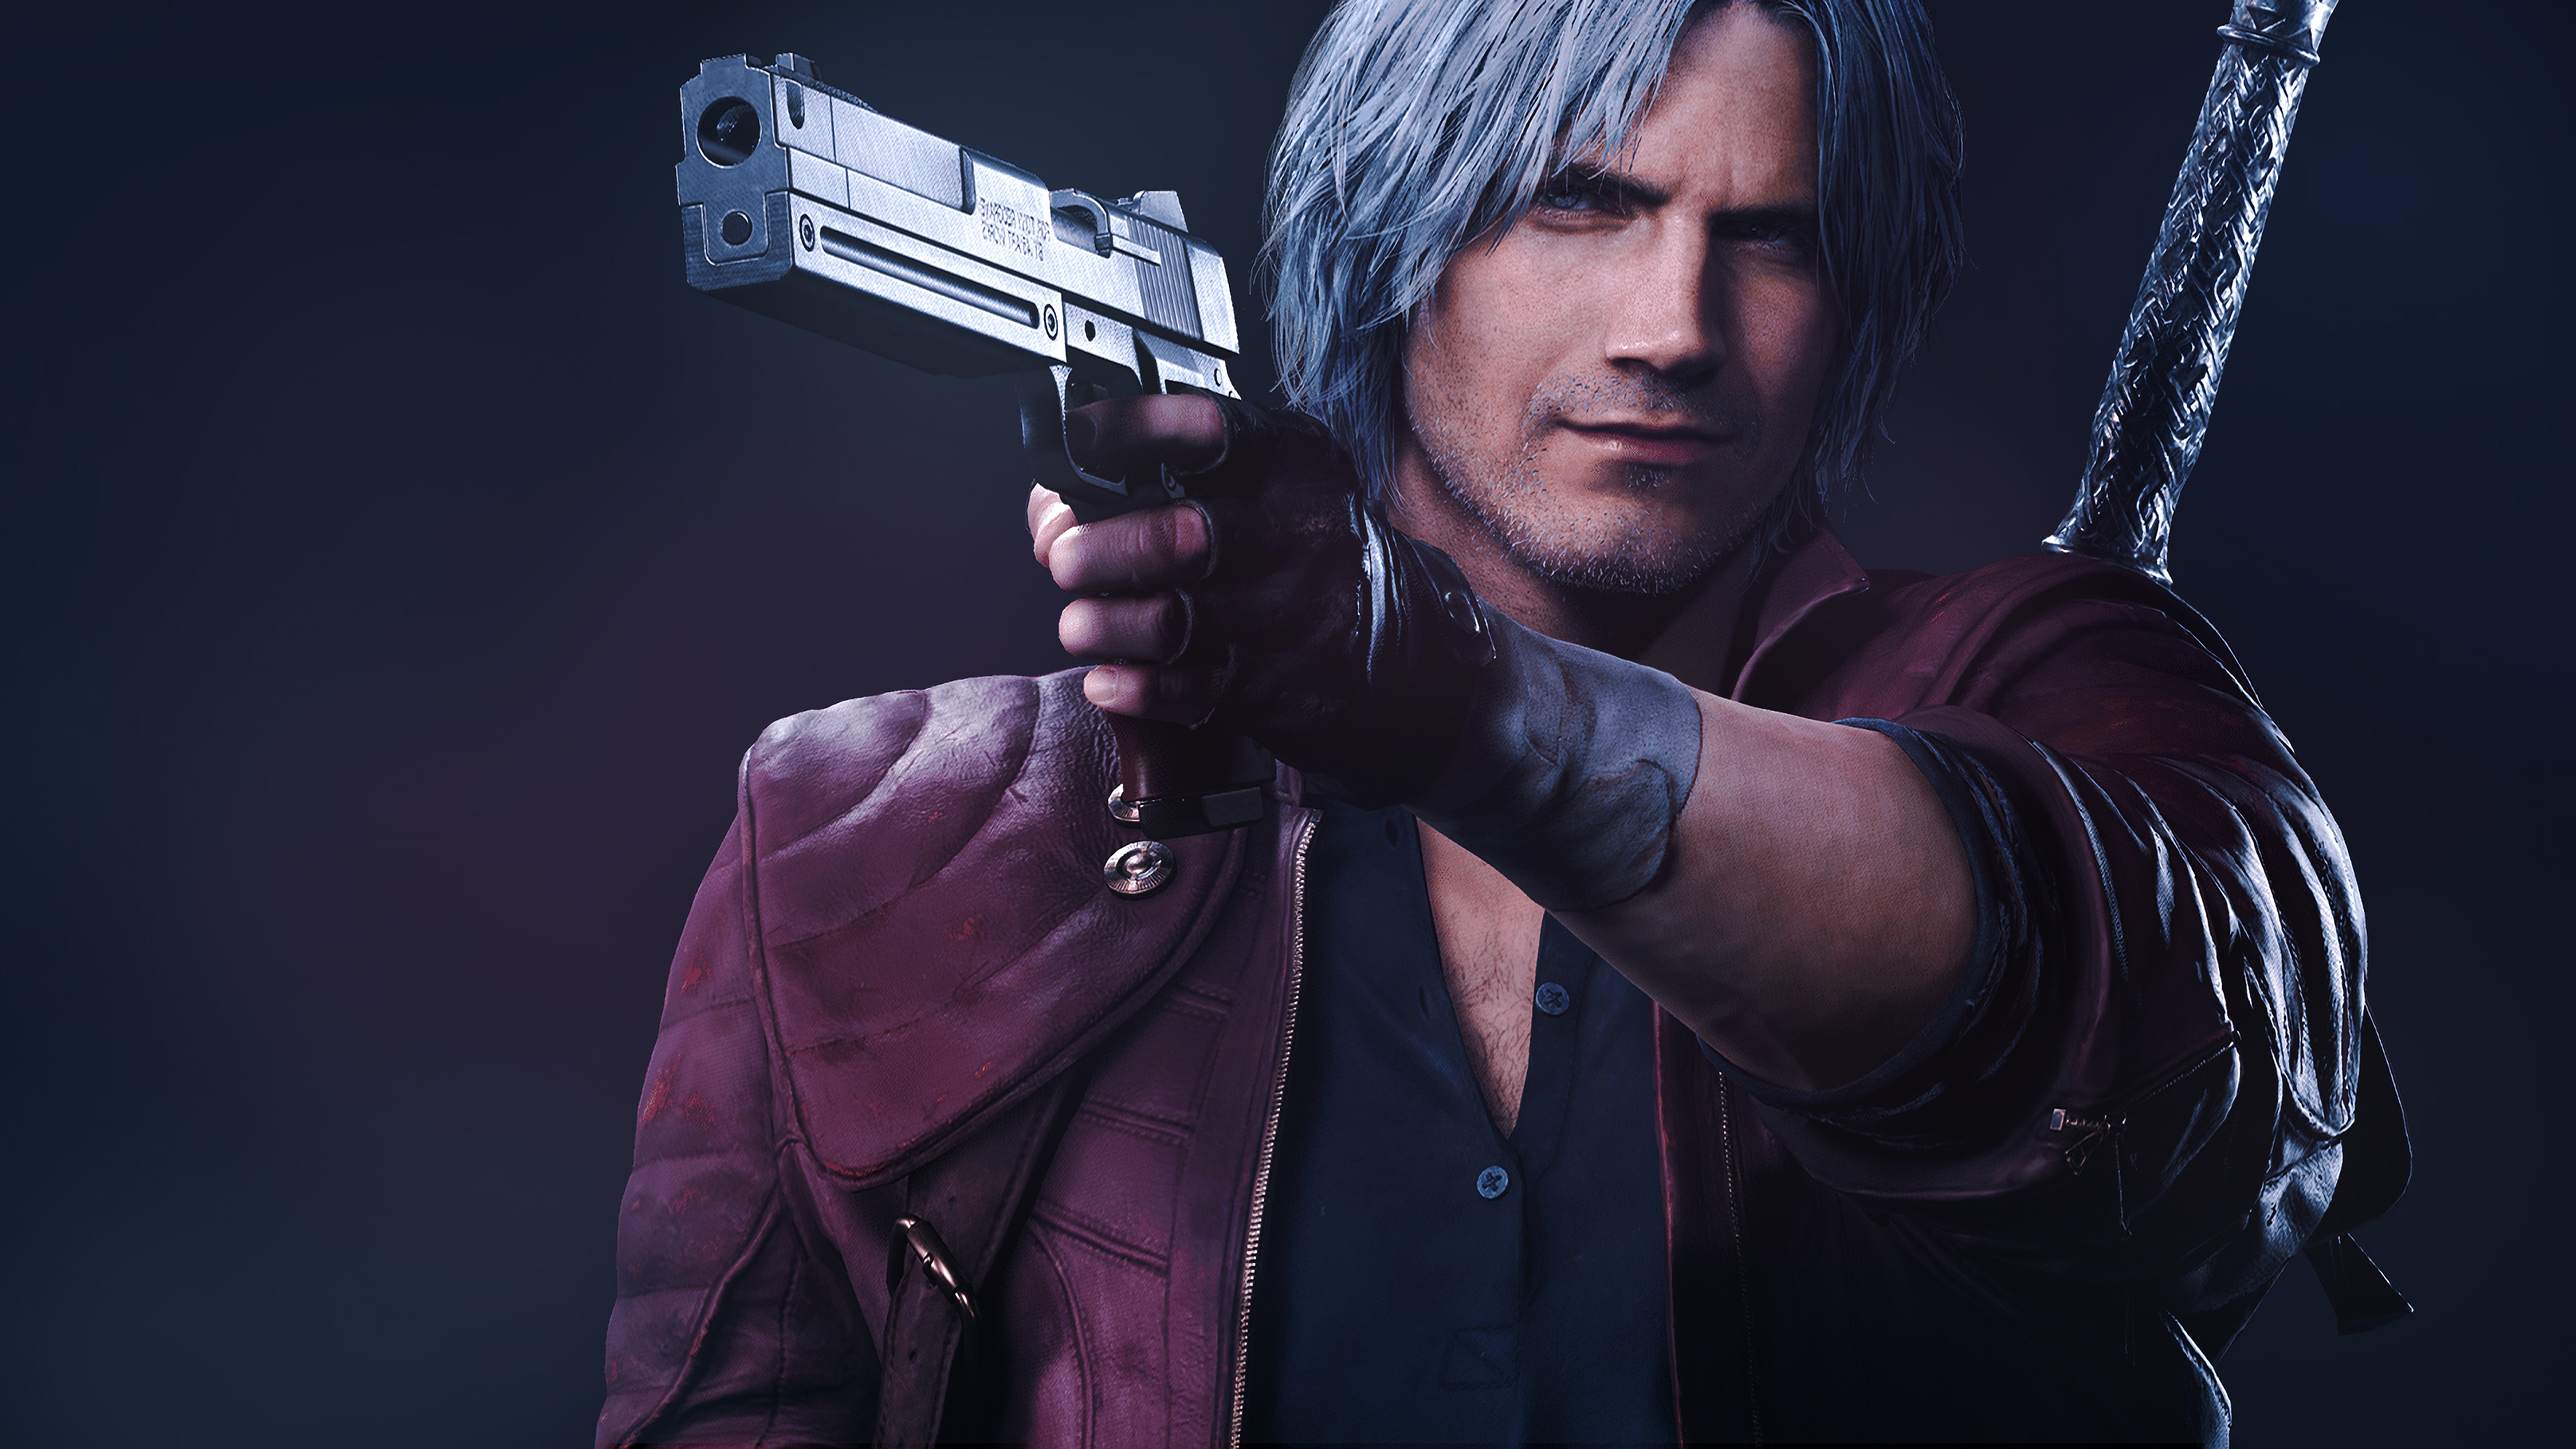 Devil May Cry 5 Wallpaper: Dante Devil May Cry 5k, HD Games, 4k Wallpapers, Images